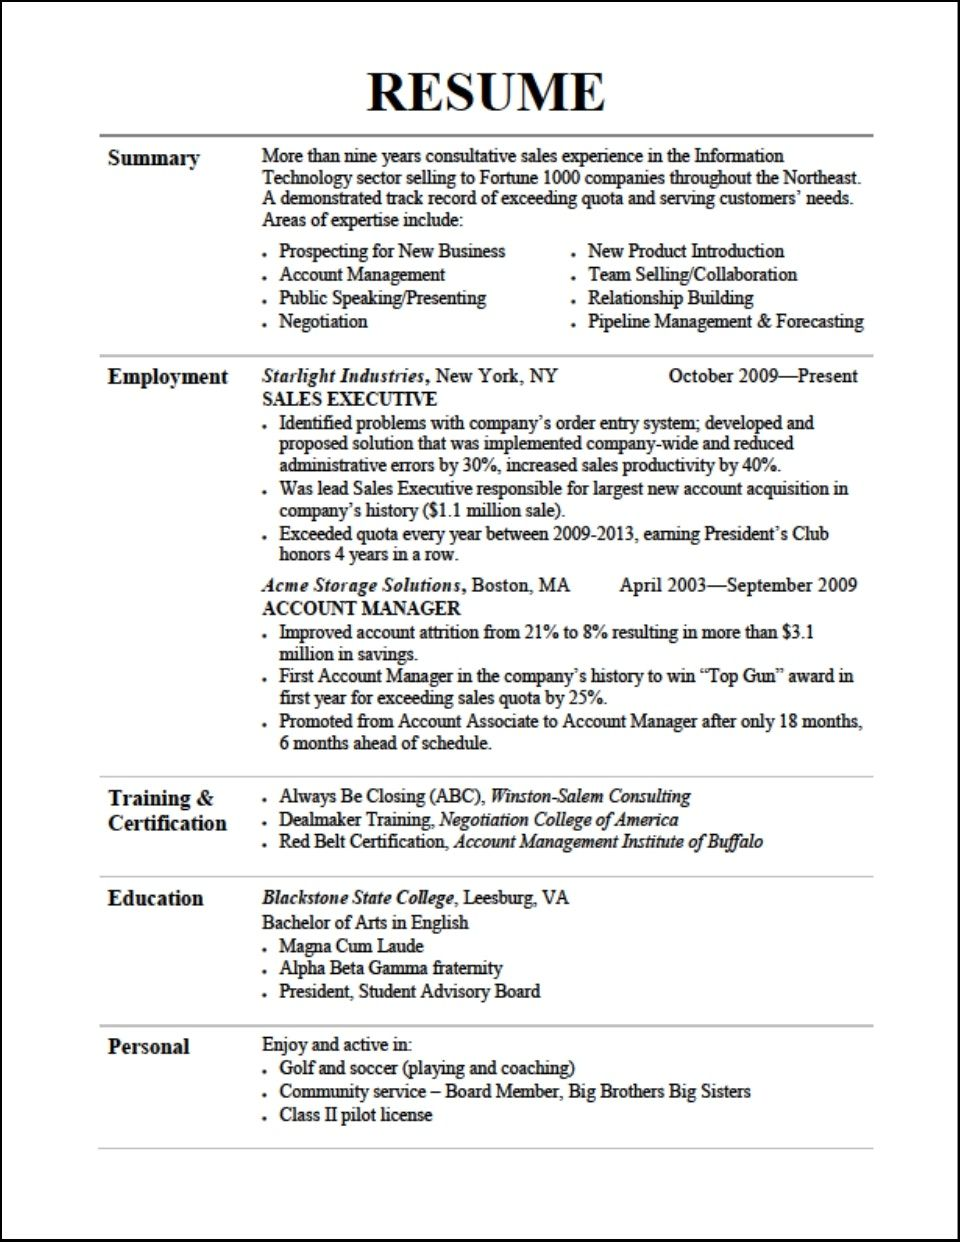 A Resume Title Examples in 2020 Job resume examples